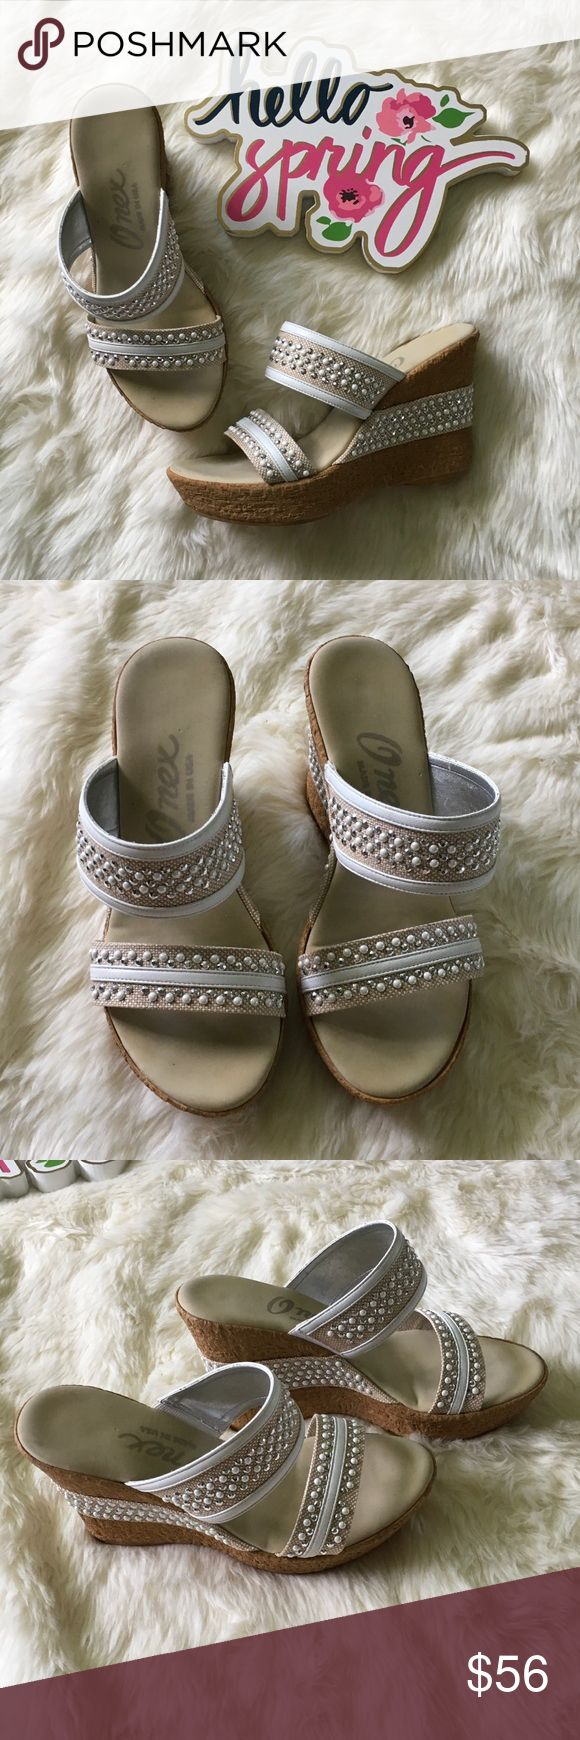 """🆕 Listing! Onex embellished wedges Gorgeous Onex embellished wedges.  Very comfortable, cushioned insides.  As shown in last picture, missing two pearl embellishments but otherwise these shoes are in like new condition.  Wedge height is 3.5"""" with a platform of 1"""" Onex Shoes Wedges"""